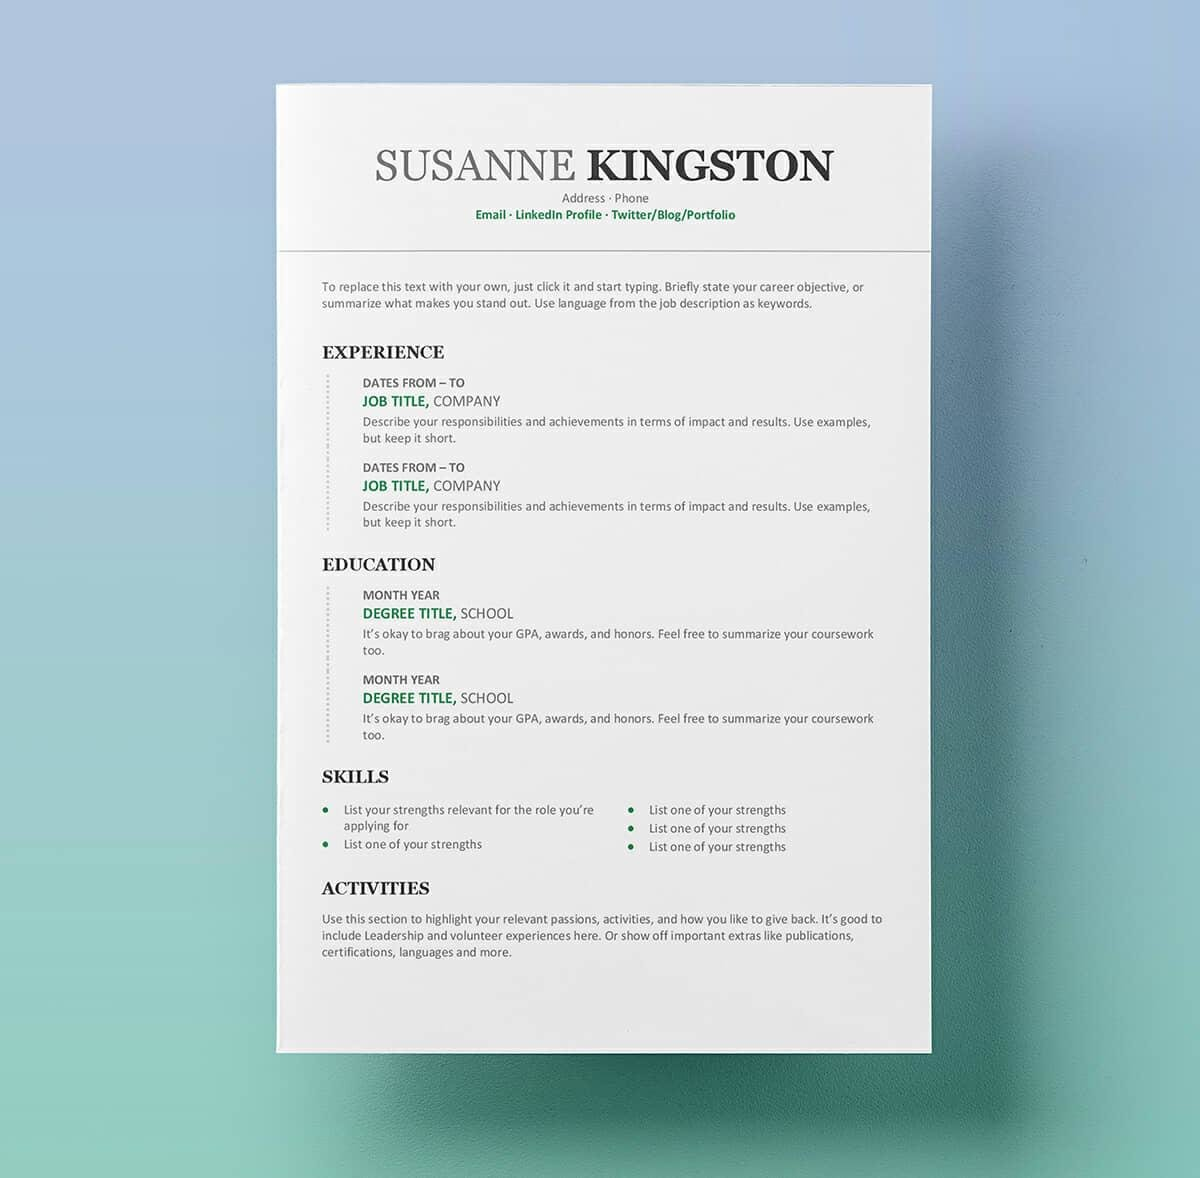 resume templates for microsoft word free modern sample years experience education majors Resume Free Modern Resume Templates For Word